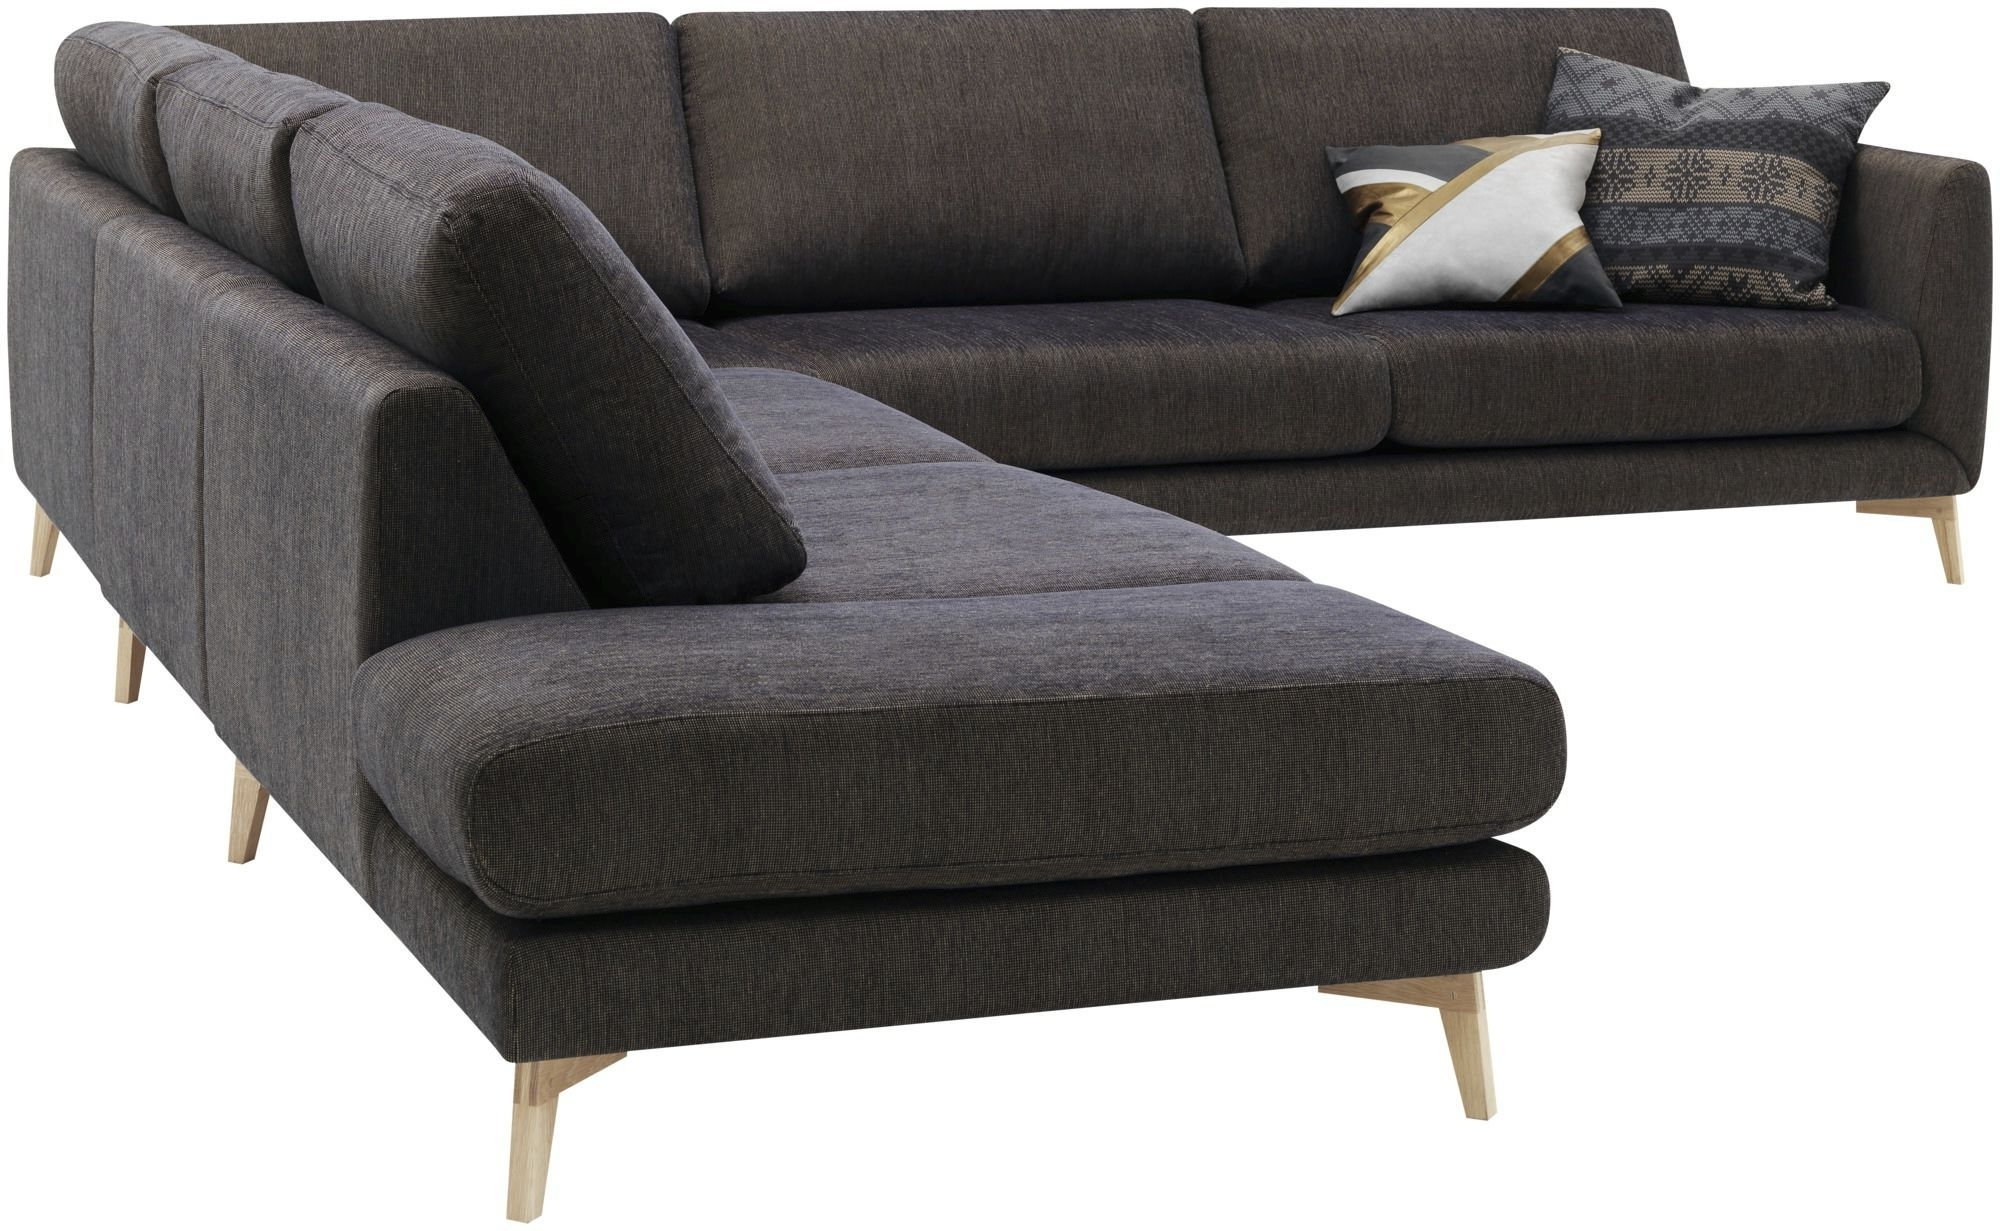 Best And Newest Modular Corner Sofas With Regard To Corner Sofa / Modular / Contemporary / Leather – Fargoanders (View 2 of 15)